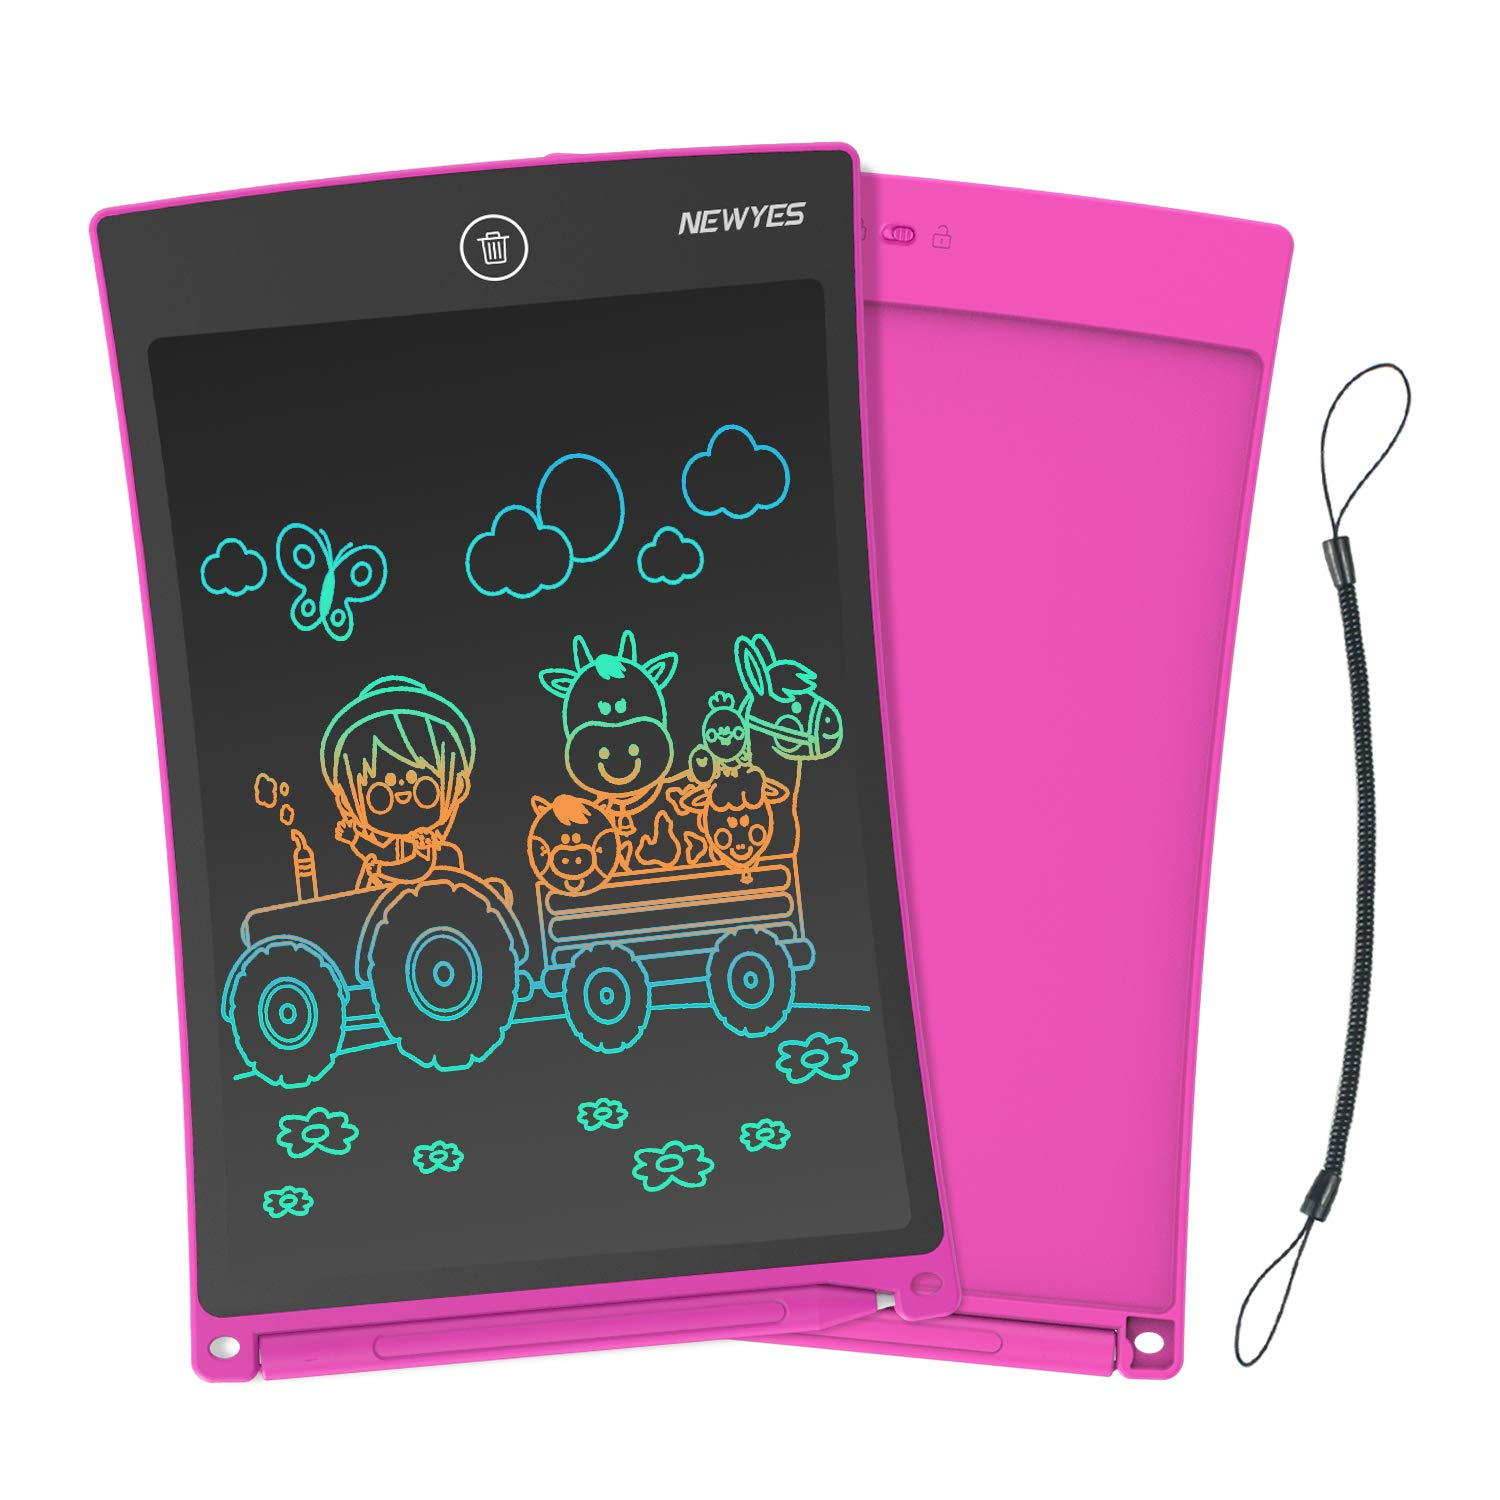 NEWYES 8.5 Inches Colorful Doodle Board LCD Screen Writing Tablet with Lock Function Magnetic Drawing Board Erasable Doodles Notepad Gifts for Ages 3+ Pink with Lanyard by NEWYES